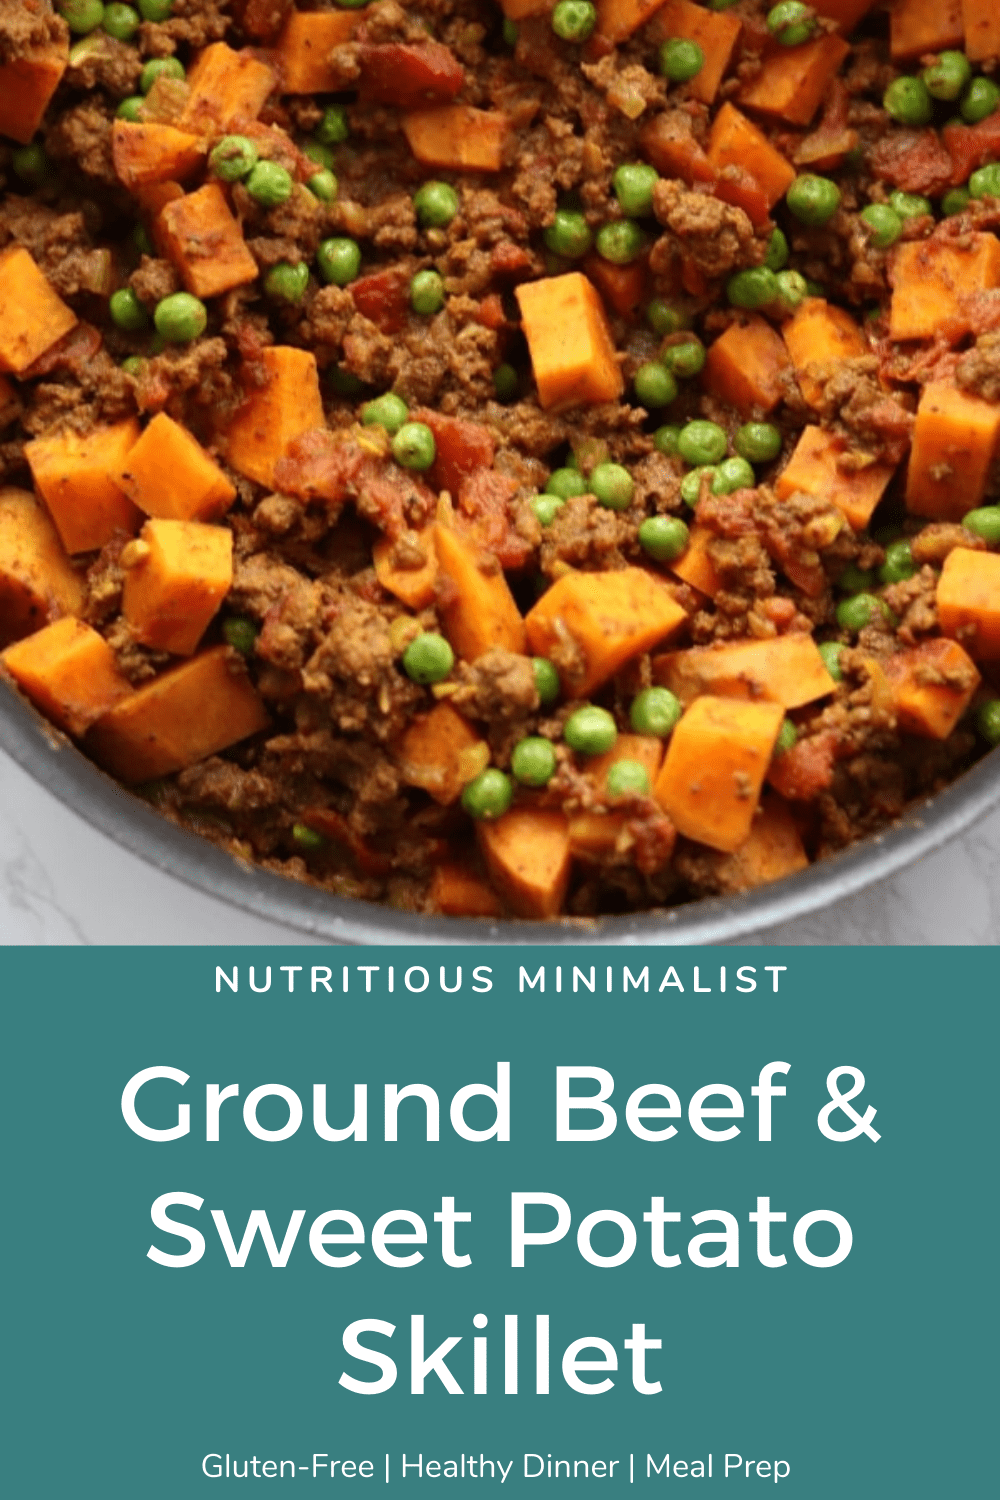 Ground Beef And Sweet Potato Skillet Nutritious Minimalist In 2020 Sweet Potato Skillet Delicious Healthy Recipes Healthy Ground Beef